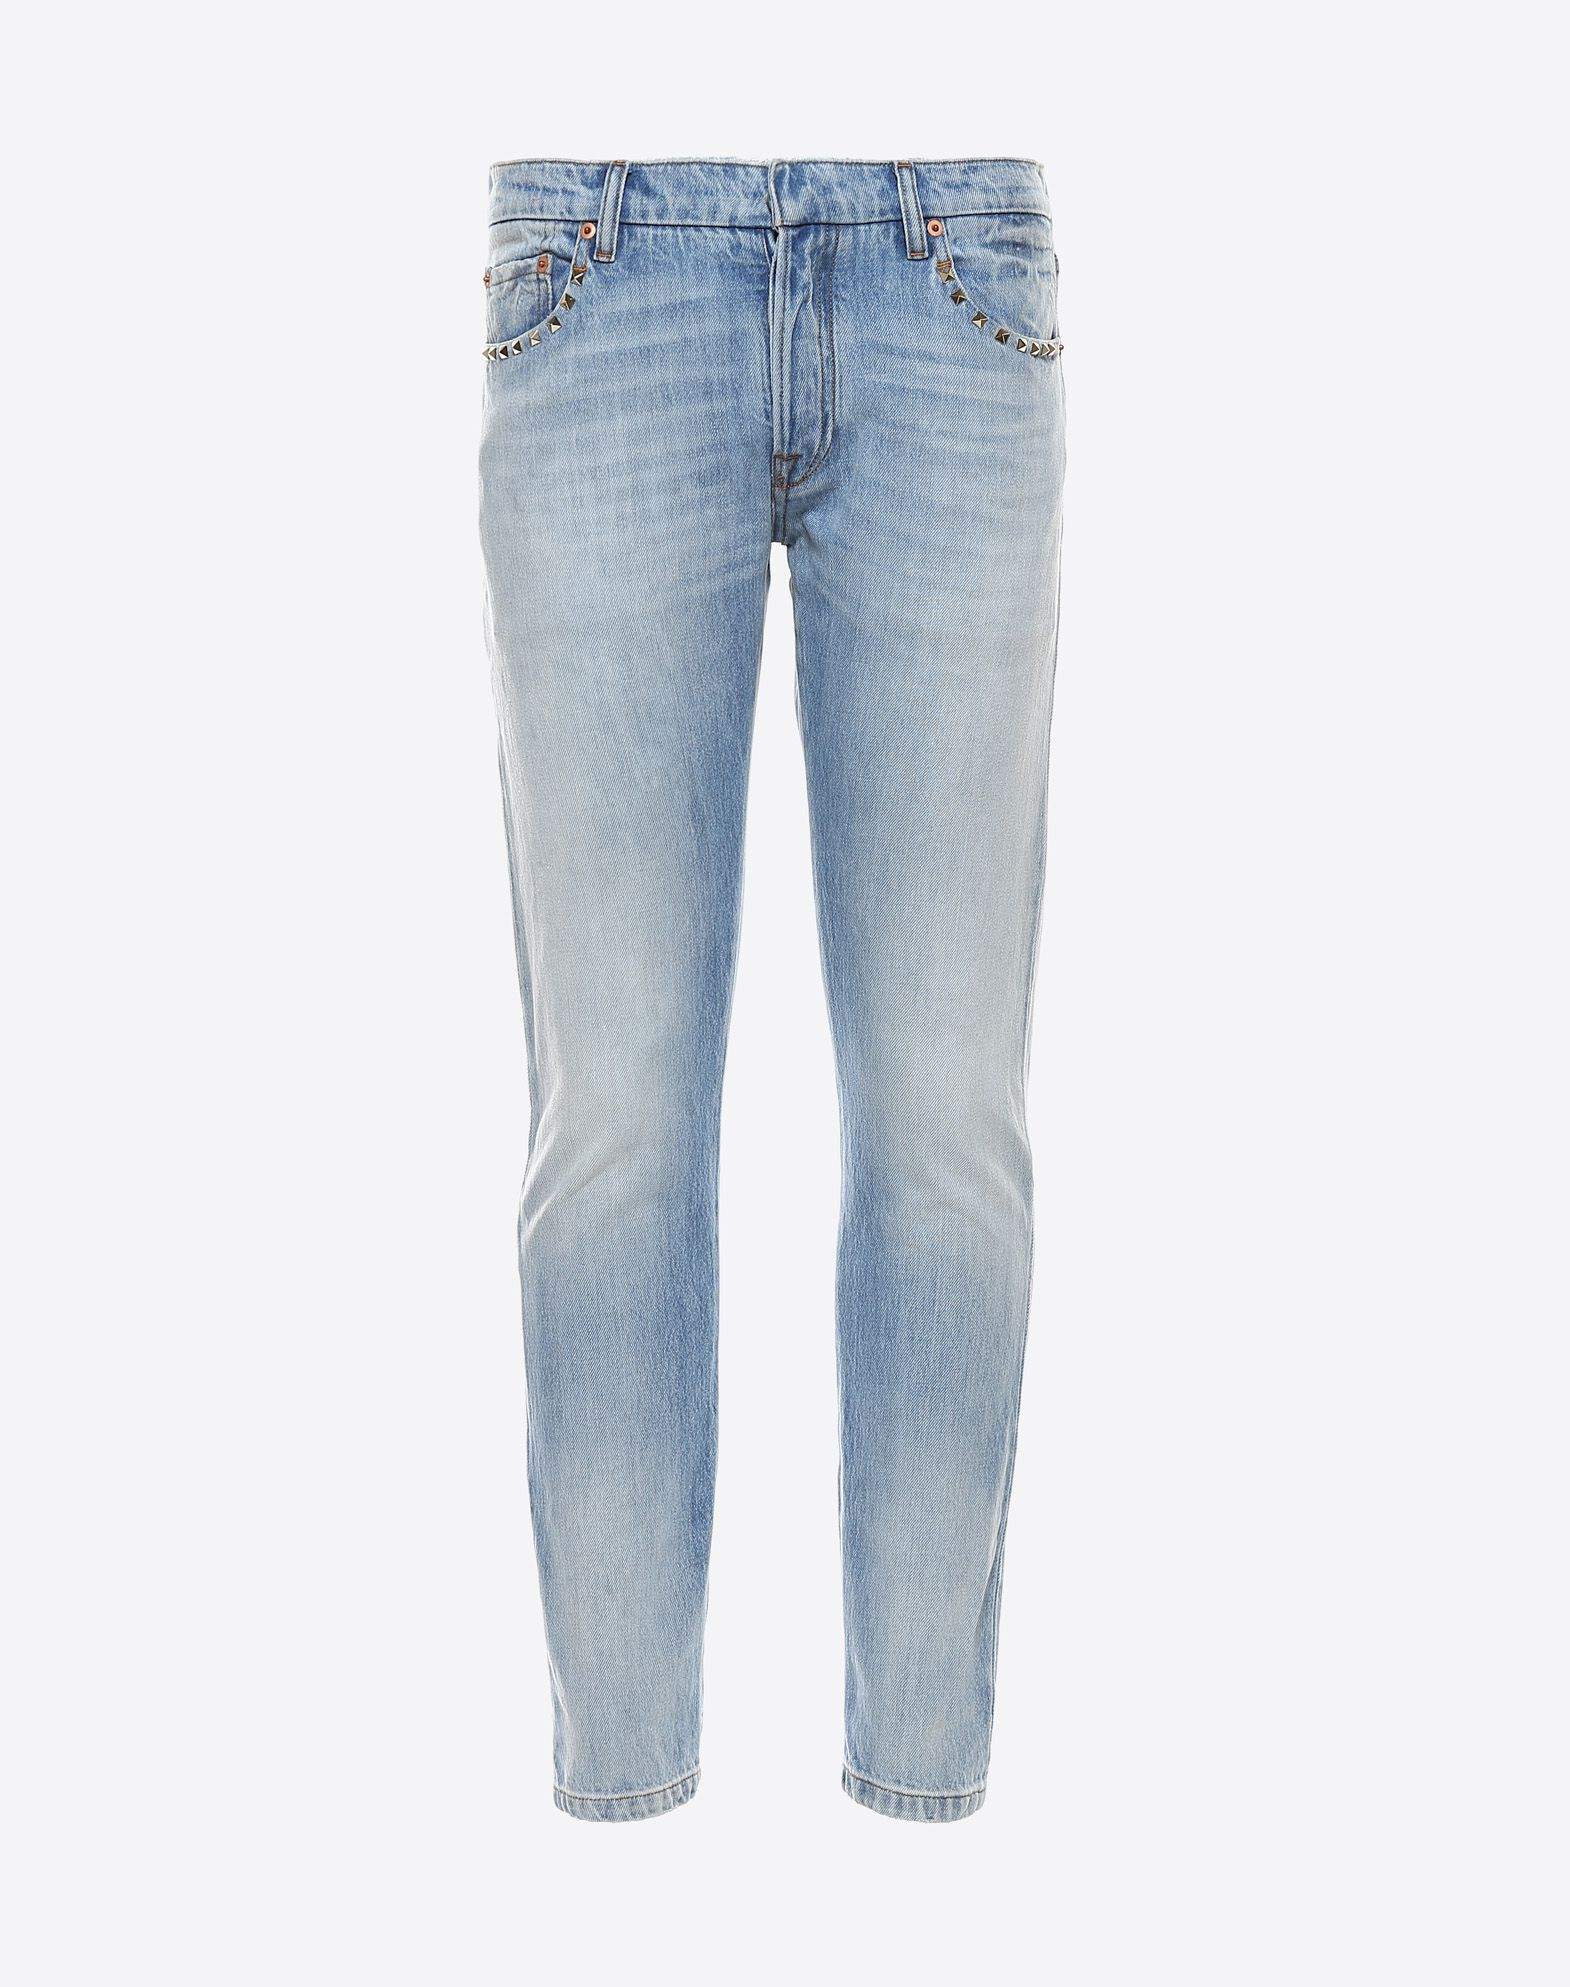 VALENTINO Denim Studs Solid color Button closing Mid Rise Five pockets Faded Effect  45335818hg